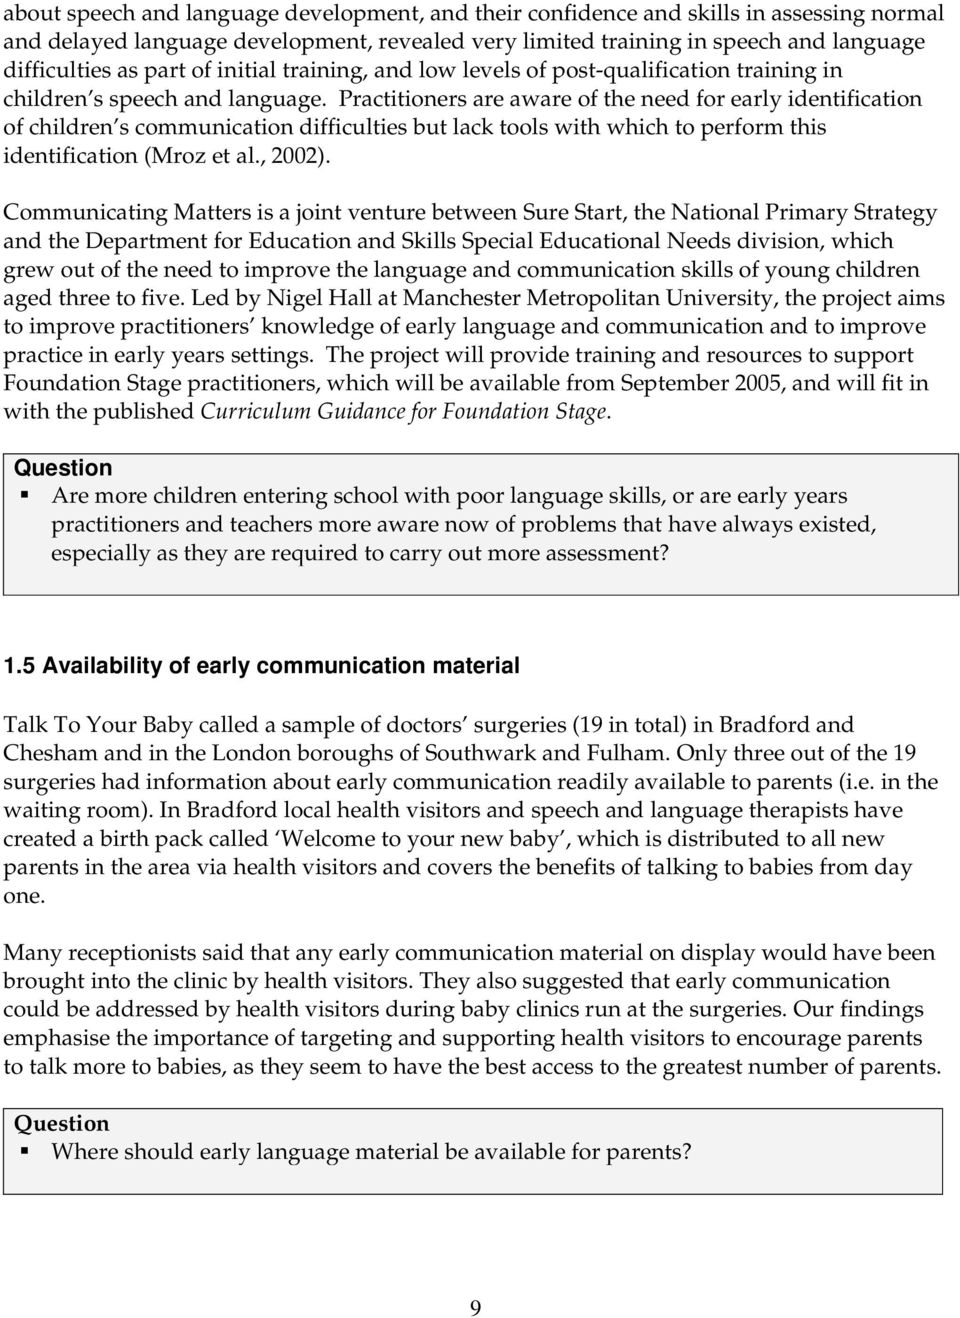 Practitioners are aware of the need for early identification of children s communication difficulties but lack tools with which to perform this identification (Mroz et al., 2002).